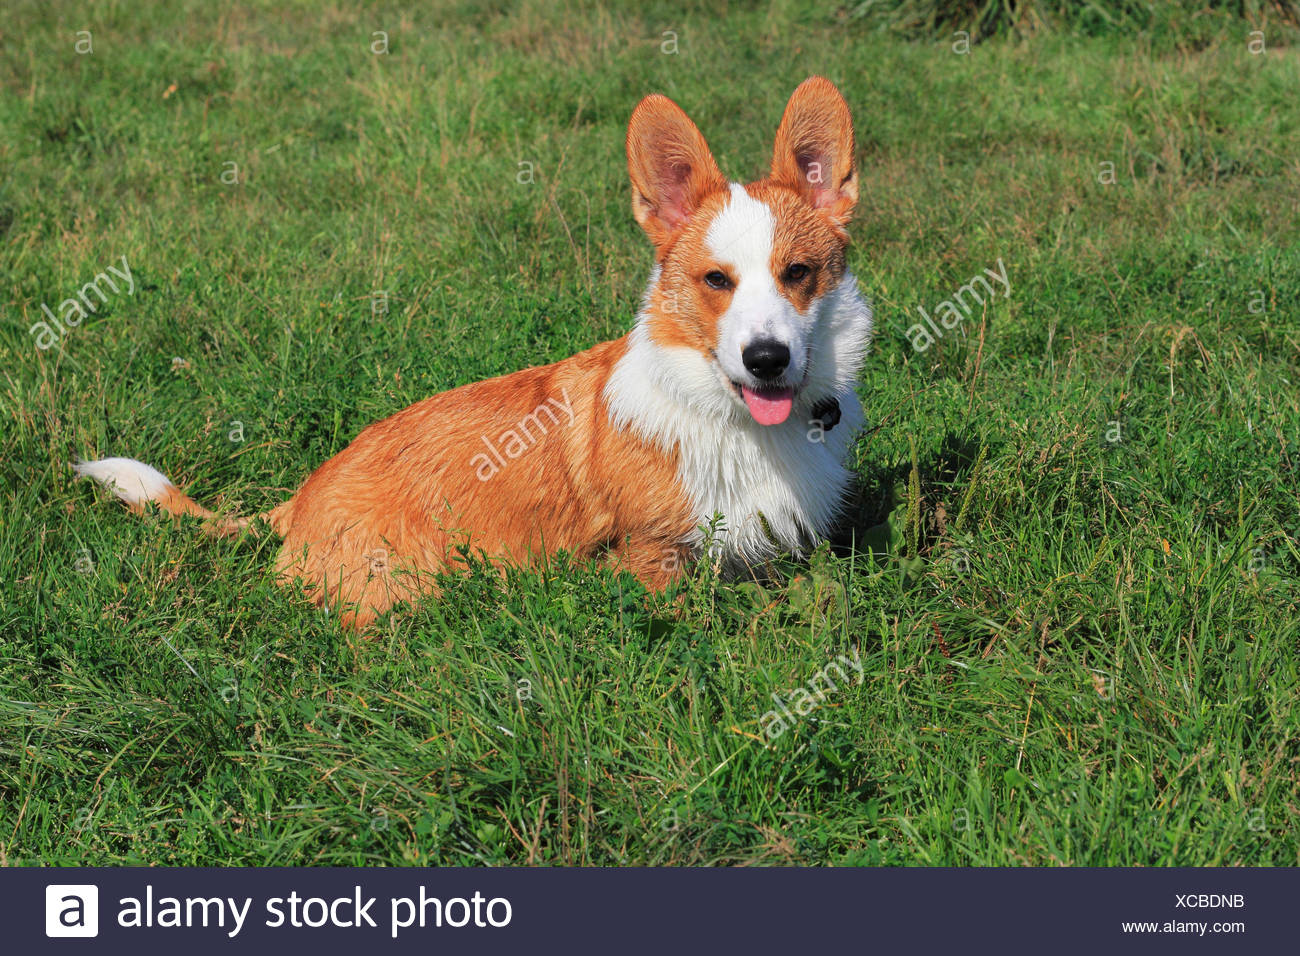 Welsh Corgi Cardigan (Canis lupus f. familiaris), six months old male dog sitting in a meadow, Germany - Stock Image